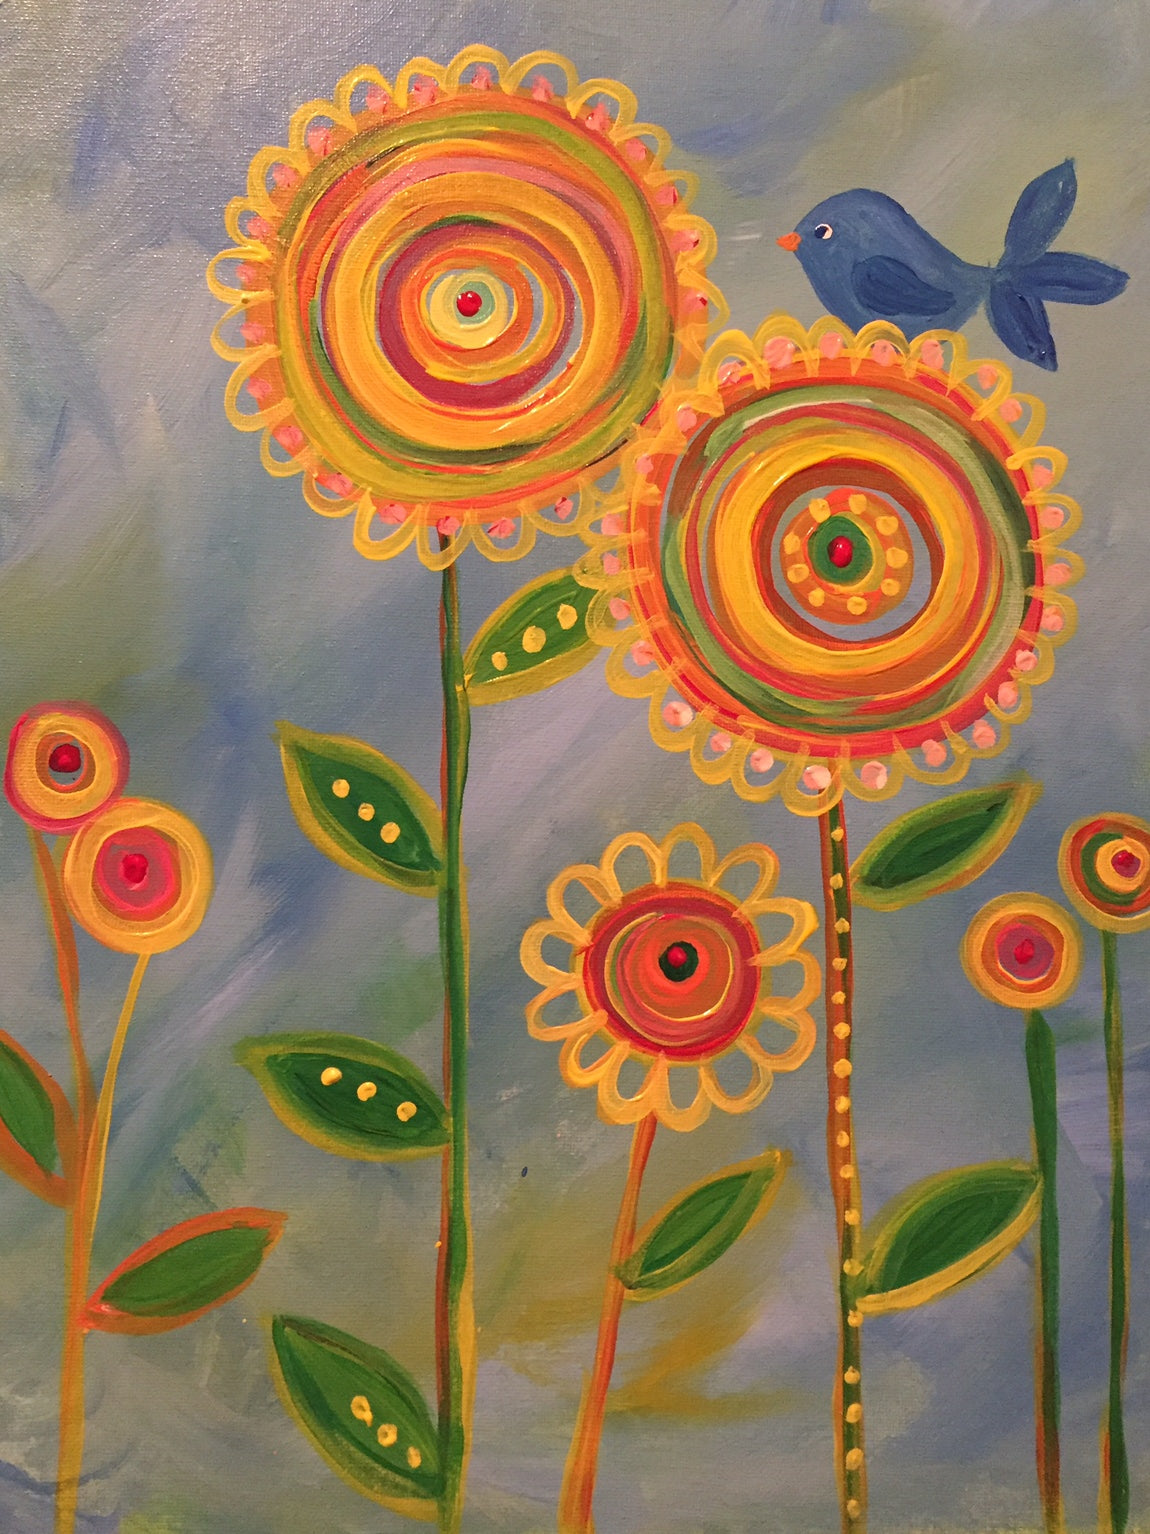 Ellies Yellow Flowers 417 Lets Gogh Art Central Florida